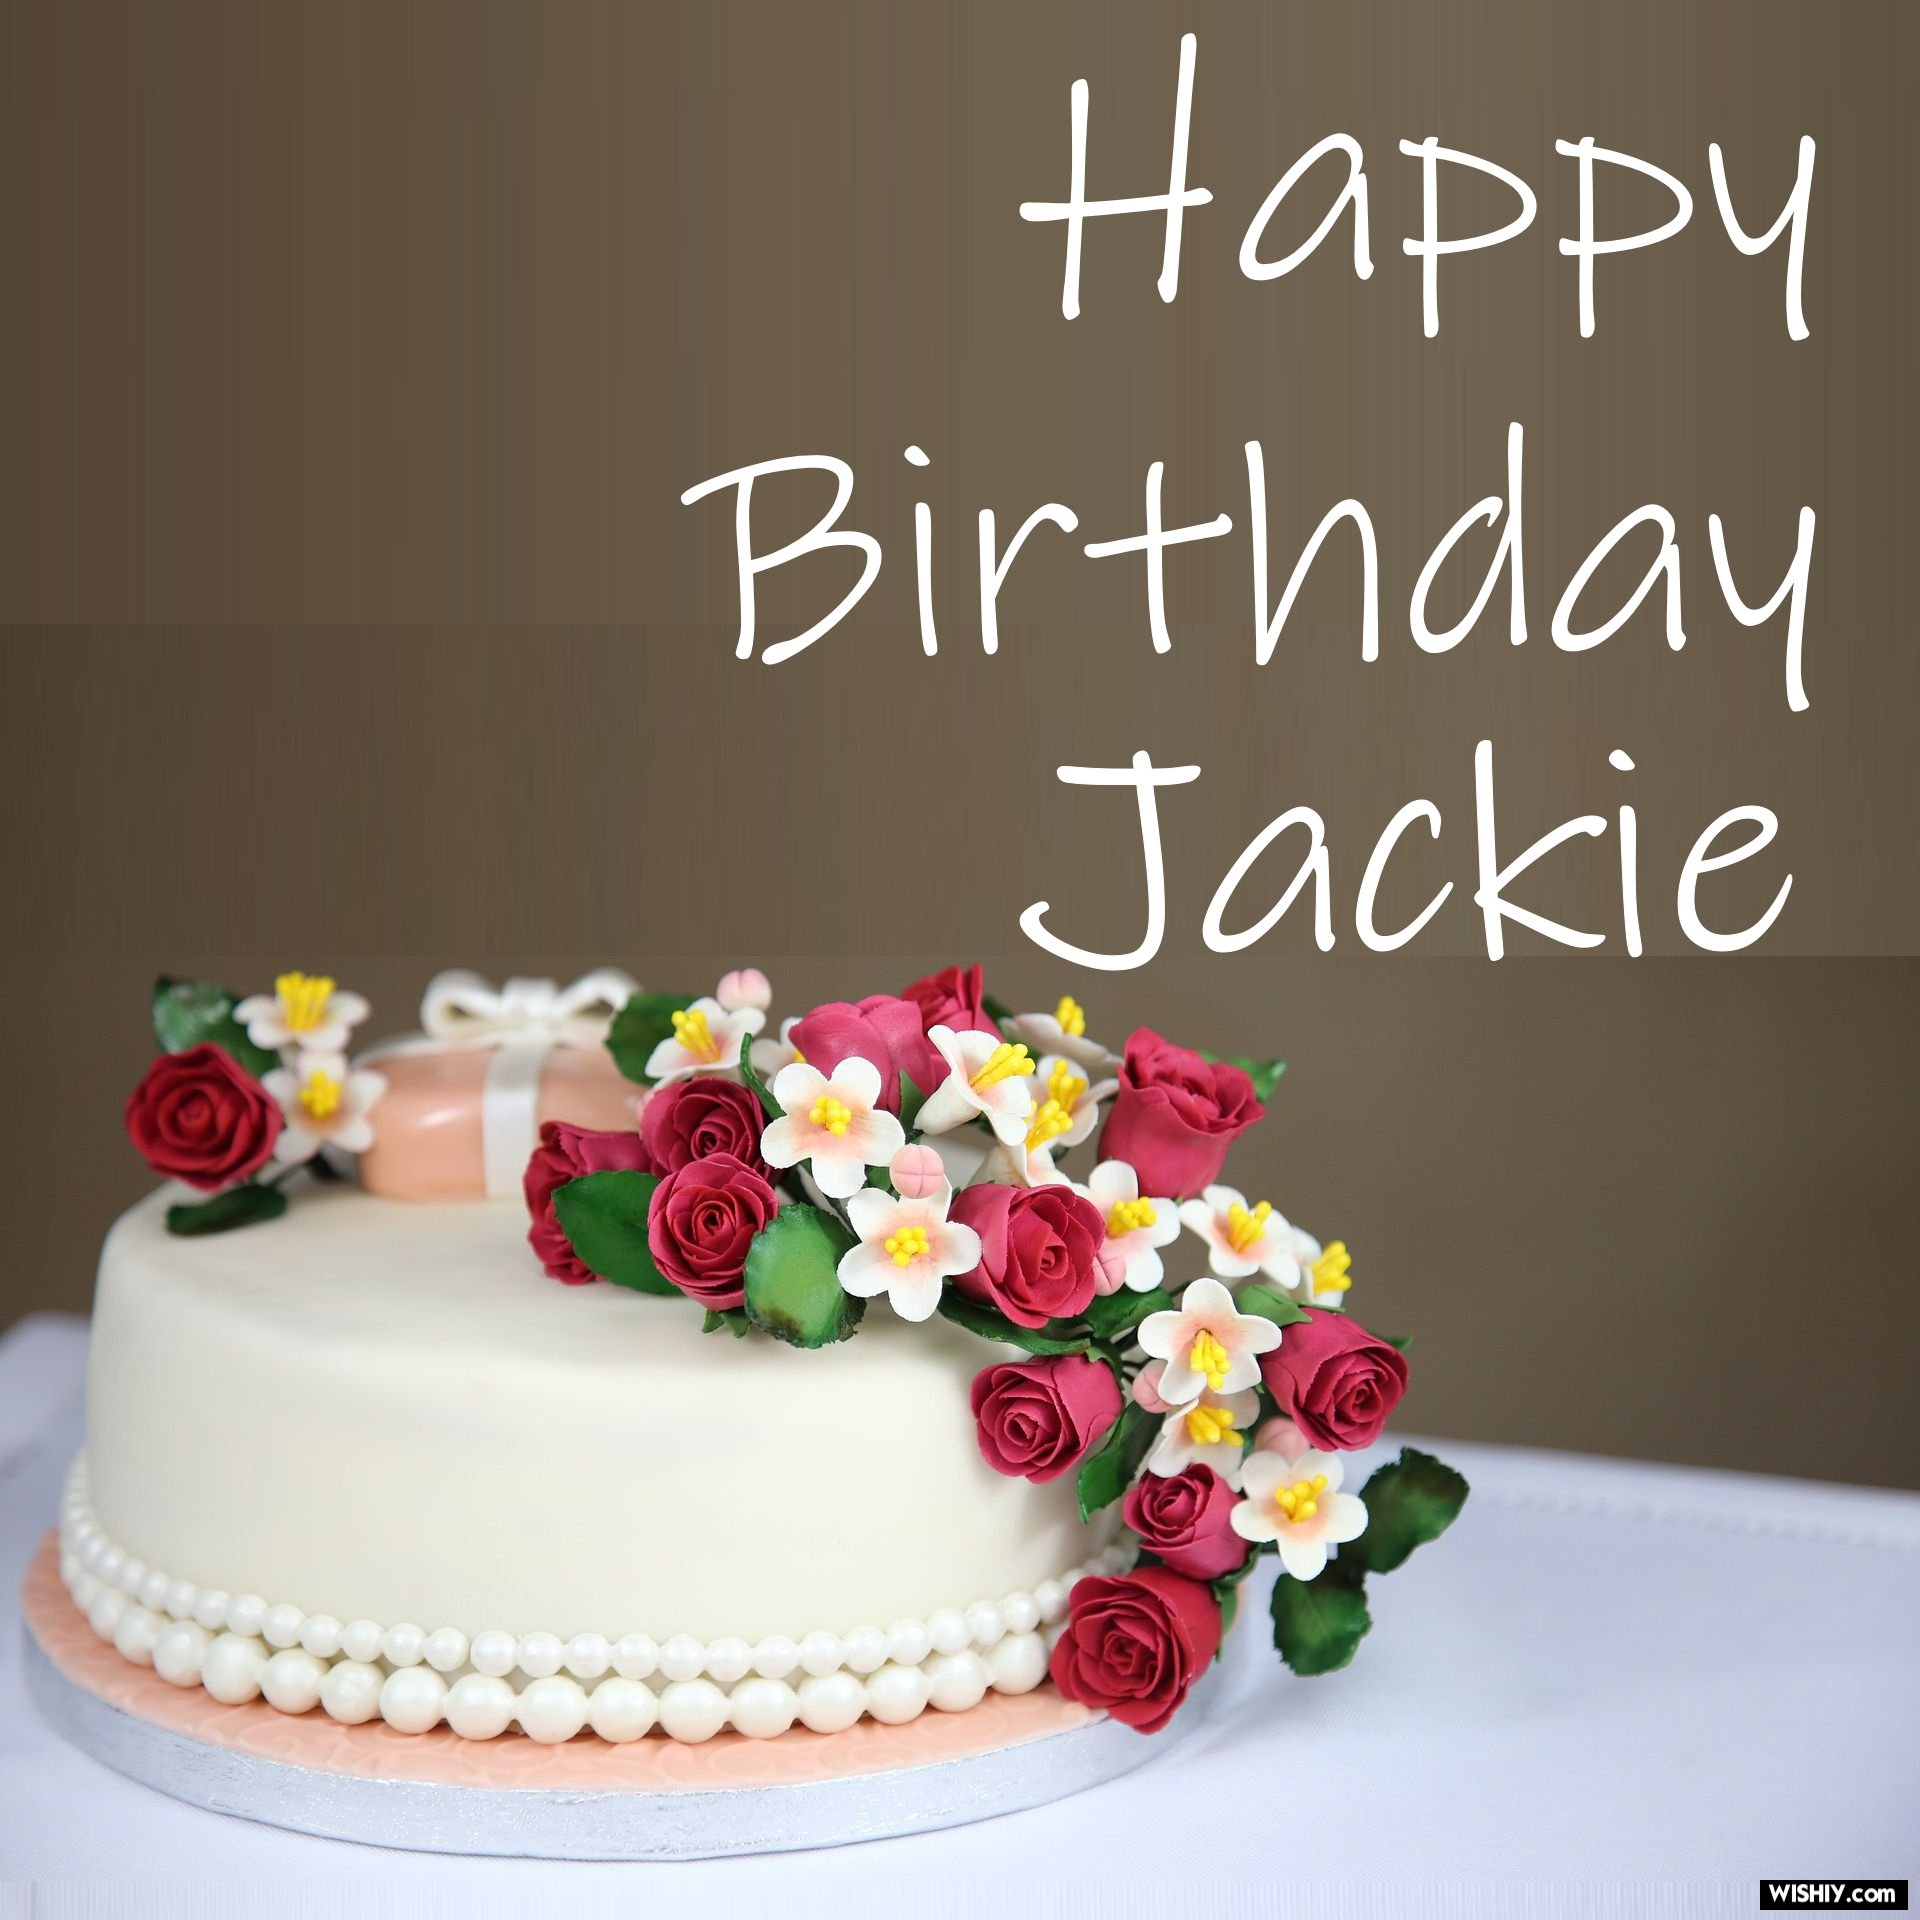 50 Best Birthday Images For Jackie Instant Download Wishiy Com